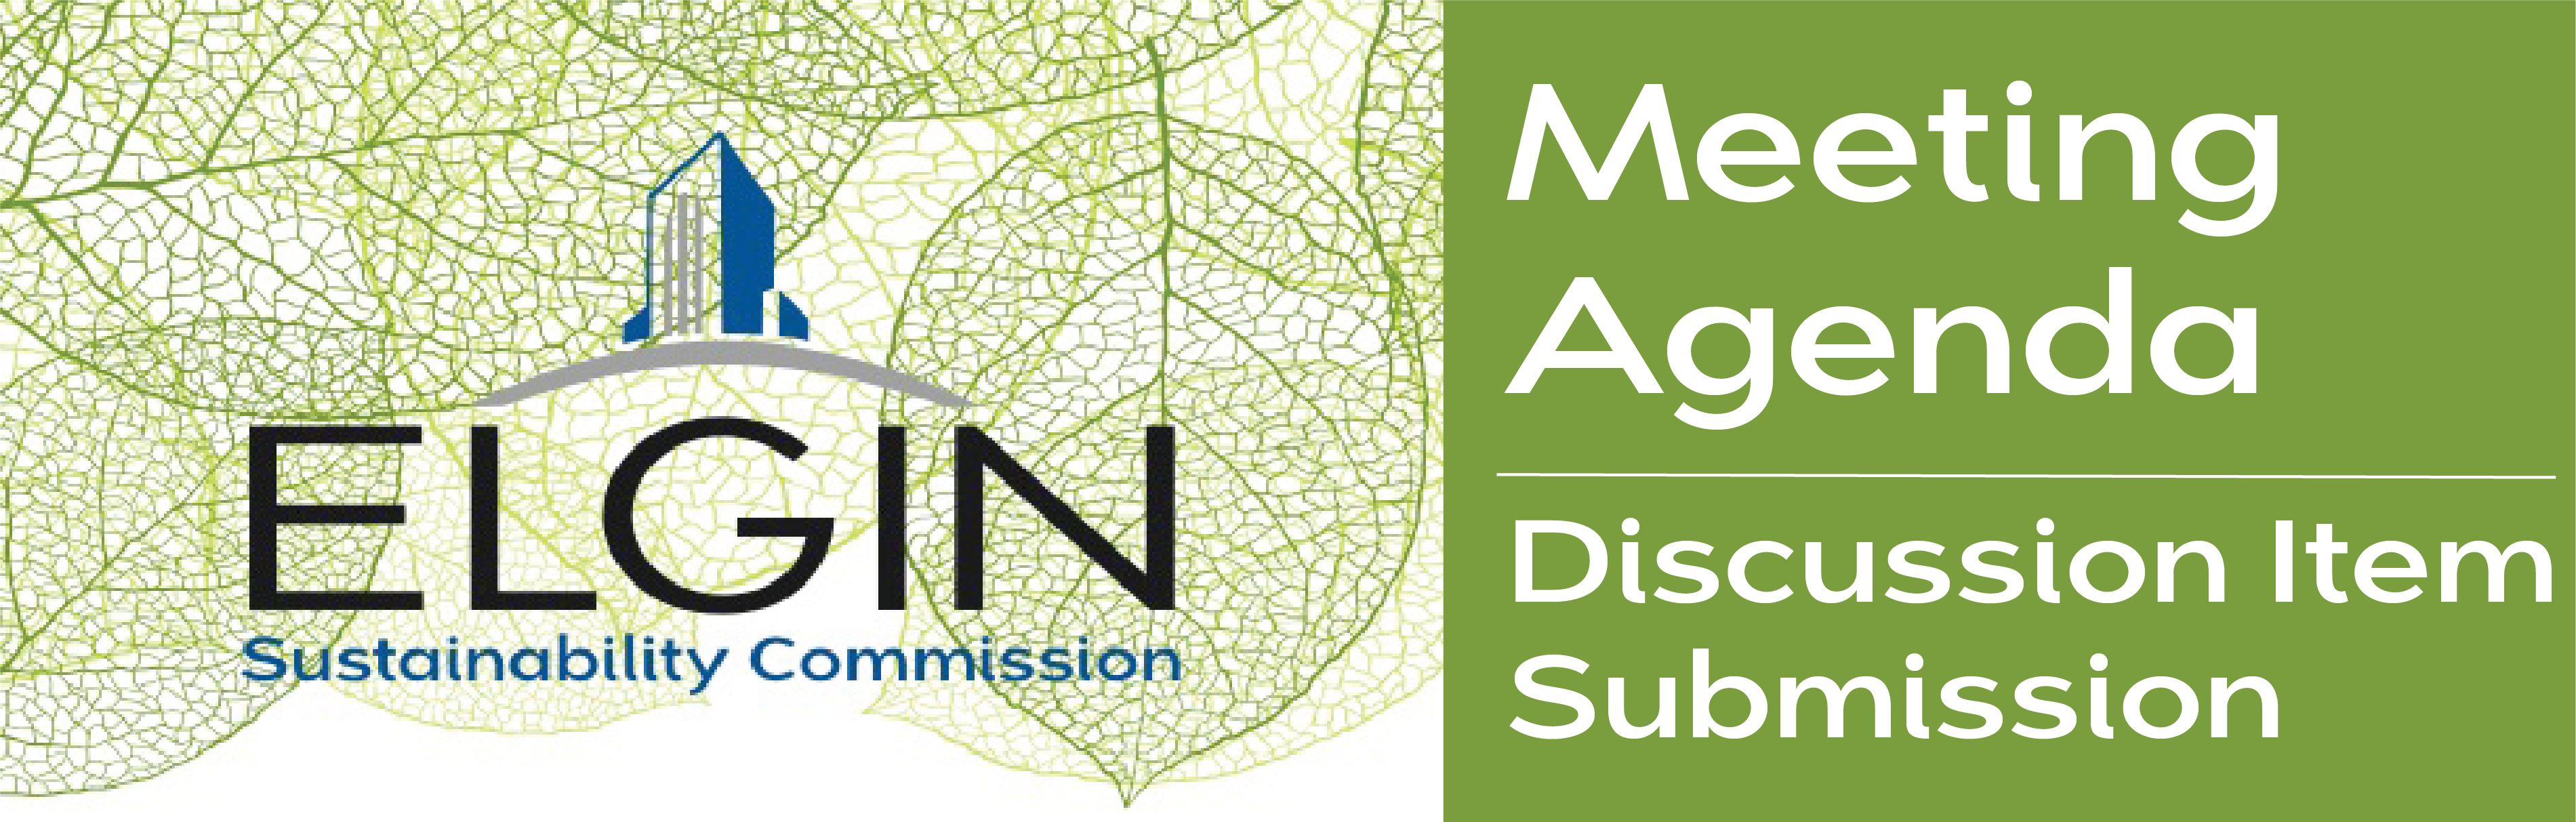 Discussion Item Submission for Sustainability Commission Meeting Agenda